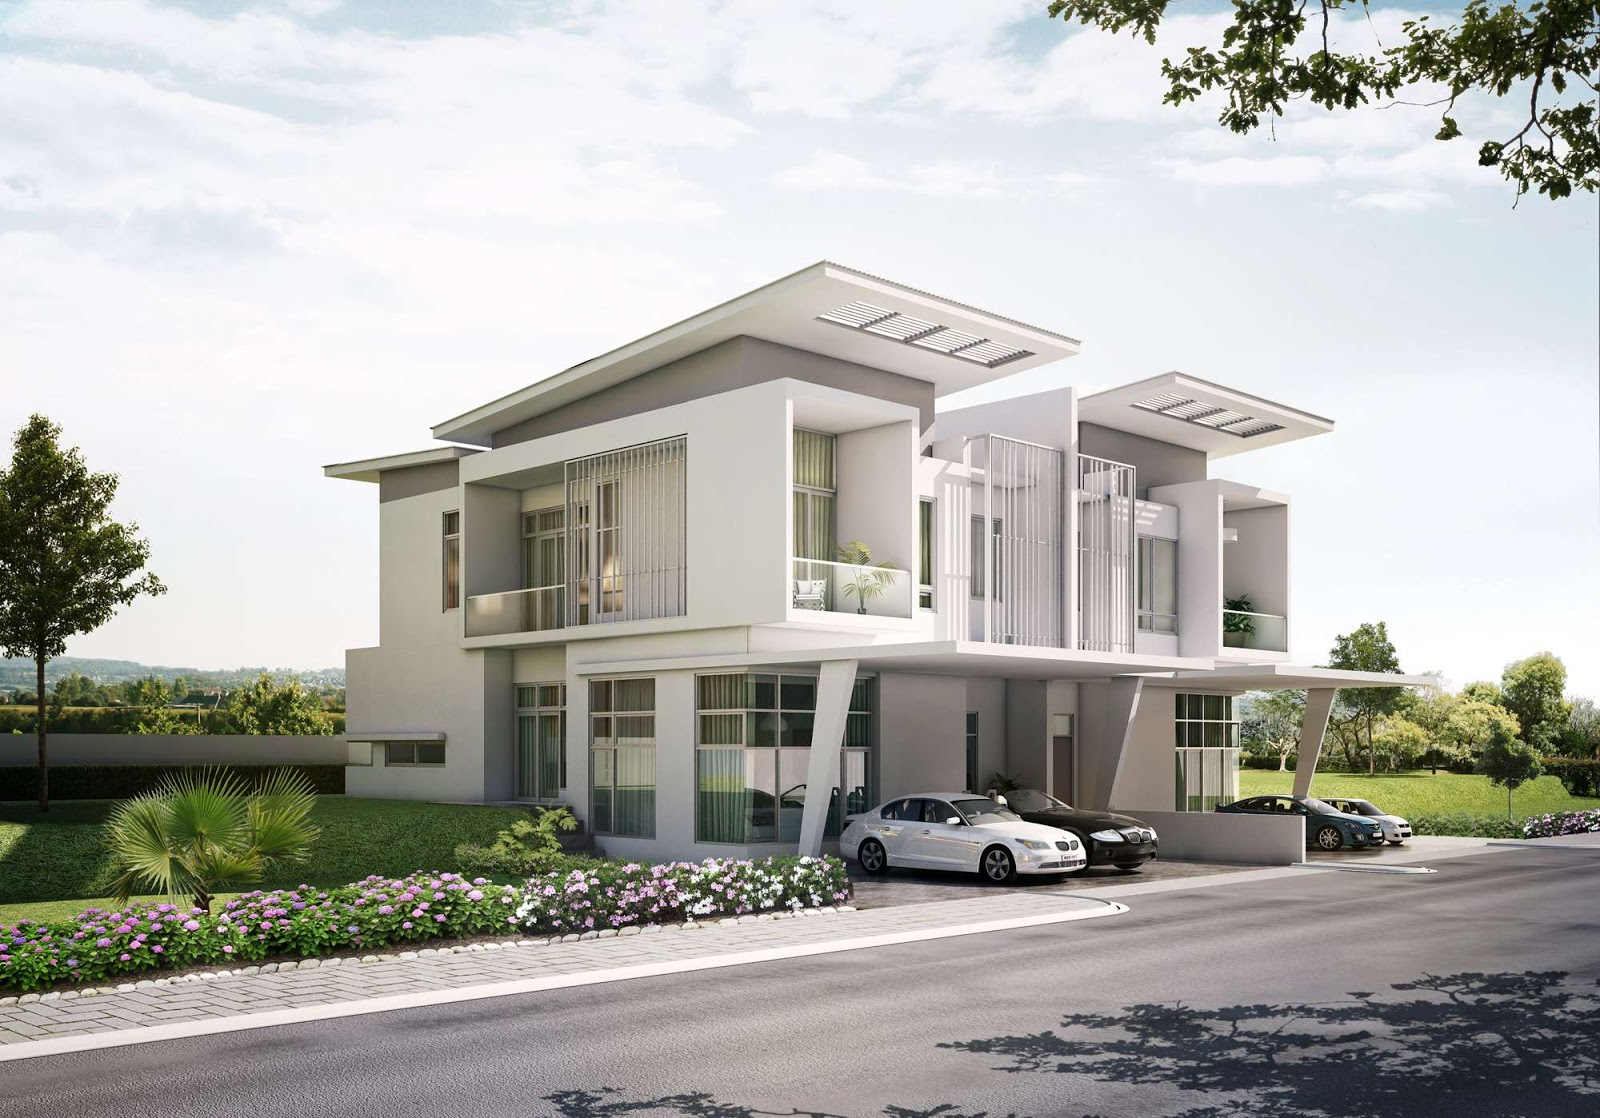 New home designs latest singapore modern homes exterior for Contemporary home exterior